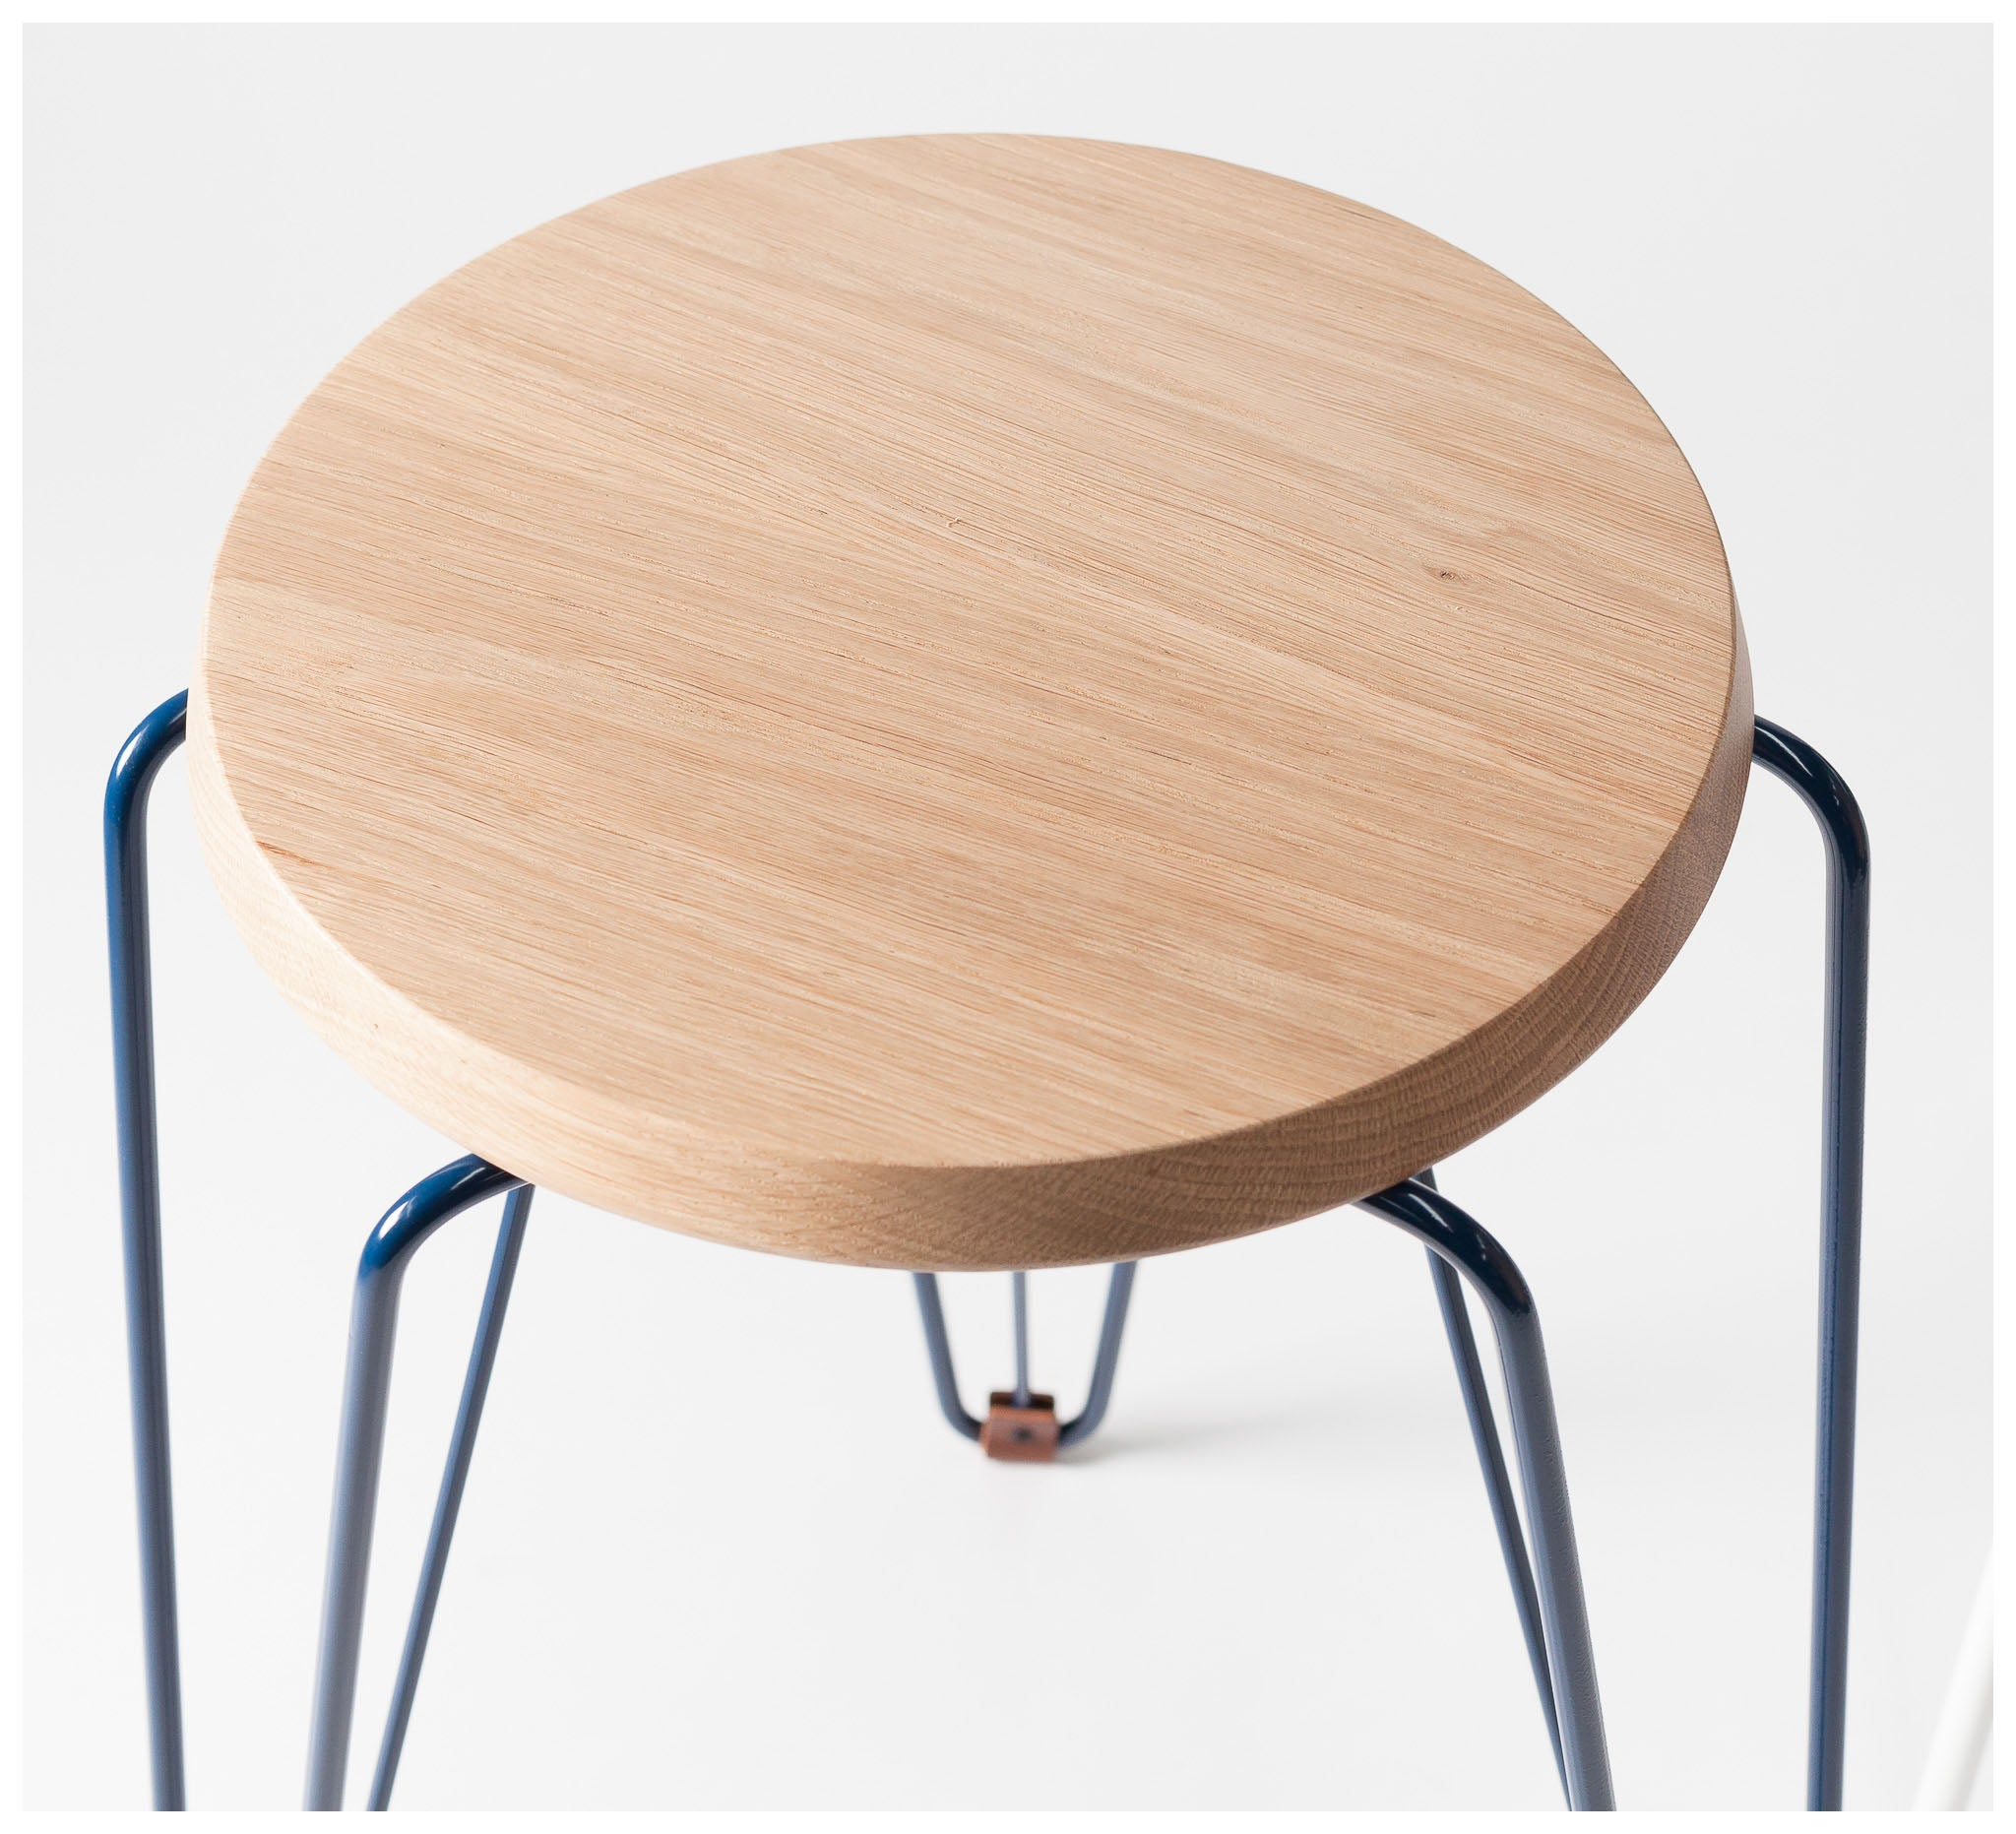 Tuckbox Design - Rex Lozenge Stool - Navy Mild Steel and Timber